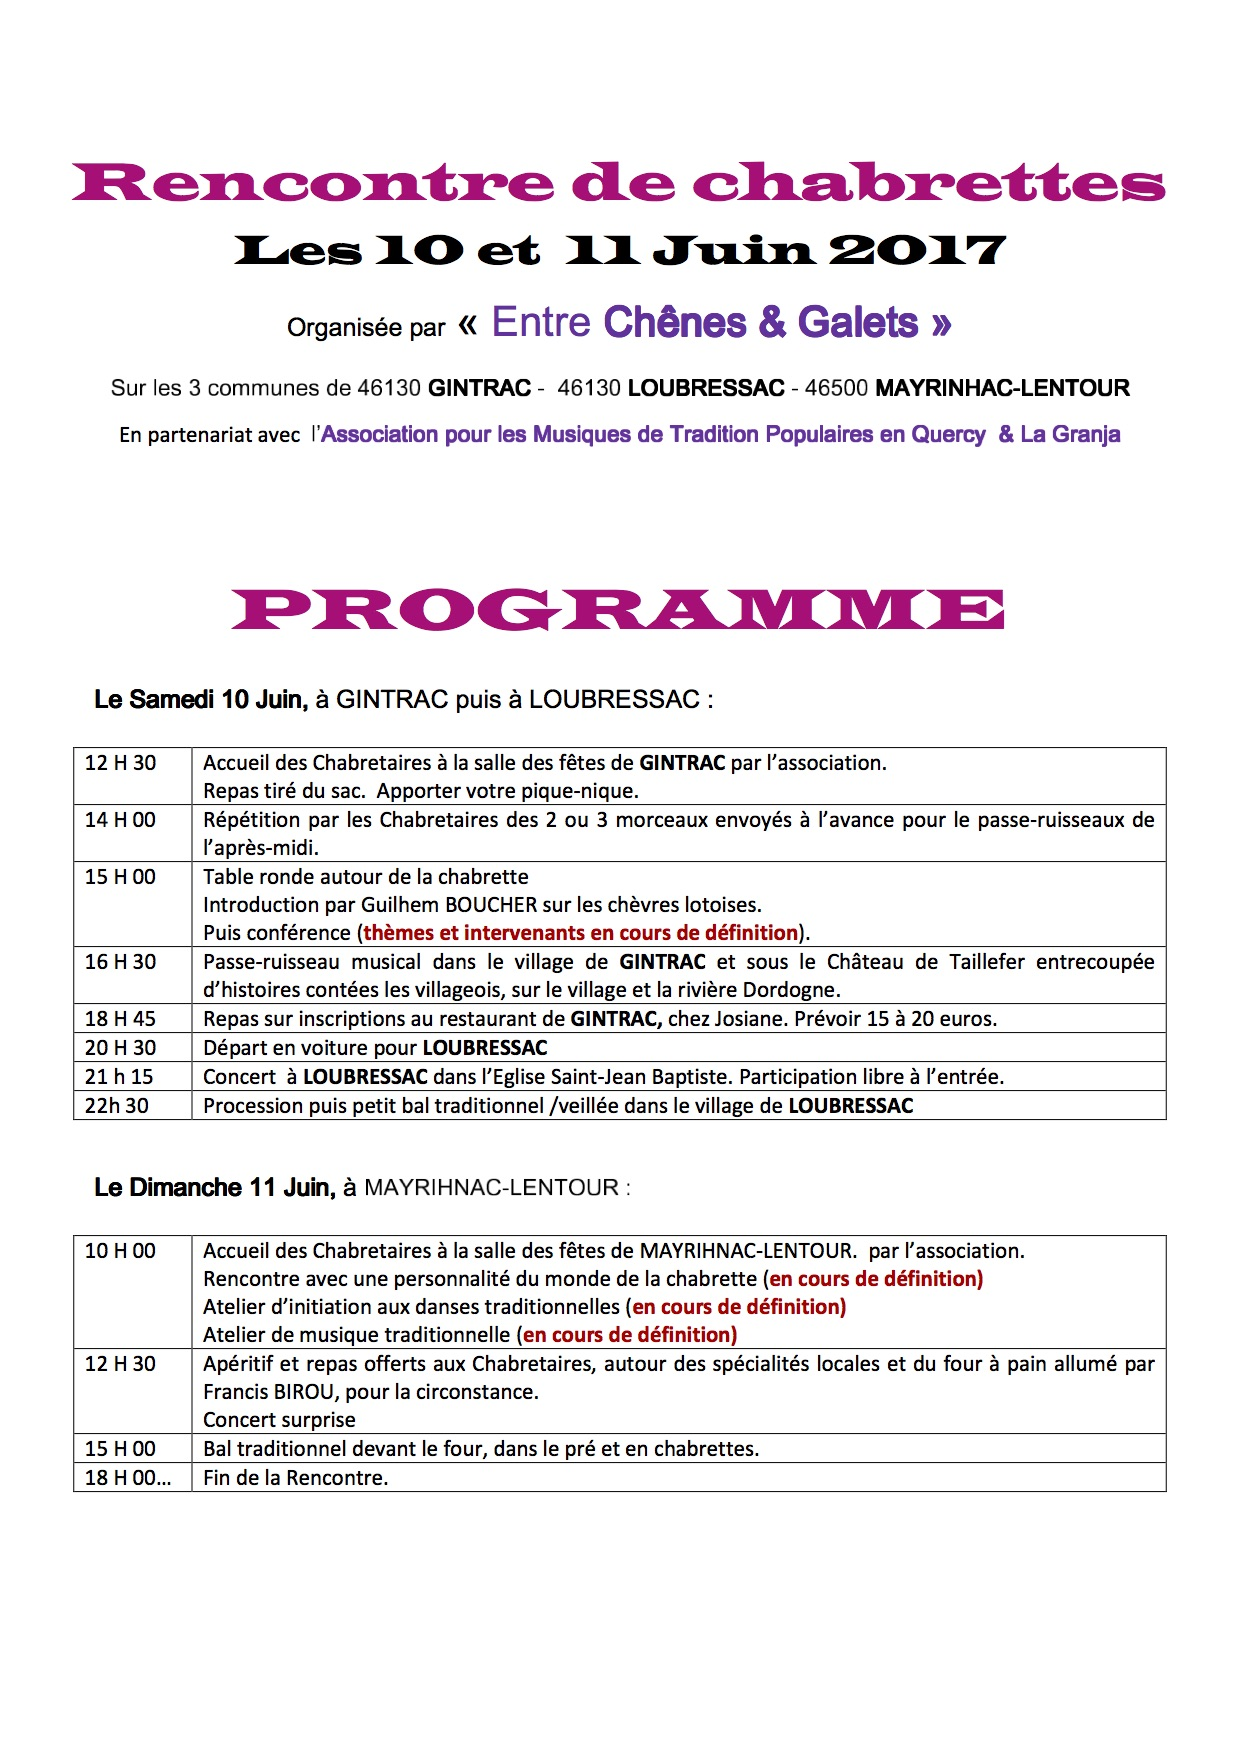 Rencontre CHABRETTES 2017-PROGRAMME GENERAL version BF 17-03-16